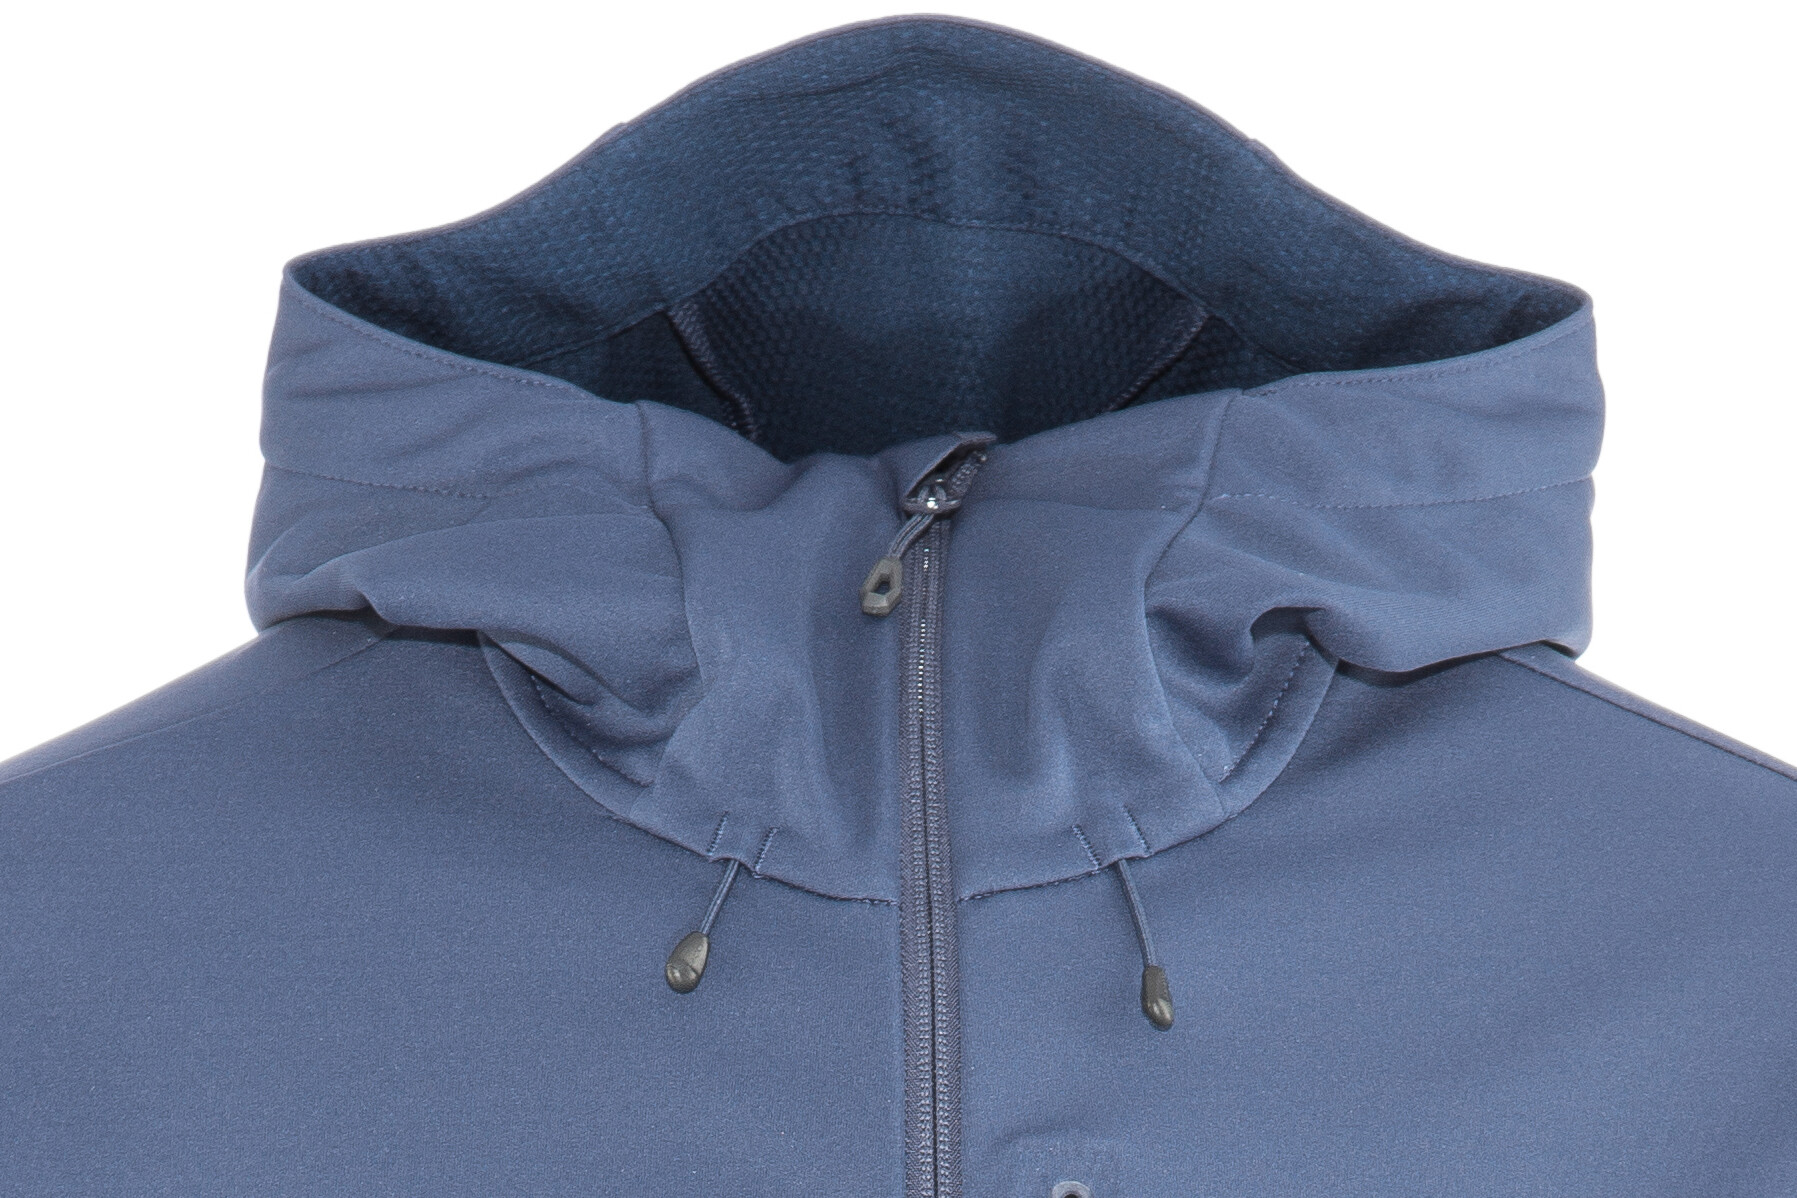 Arcteryx Klettergurt Jay : Mammut ultimate v so hooded jacket men jay melange campz